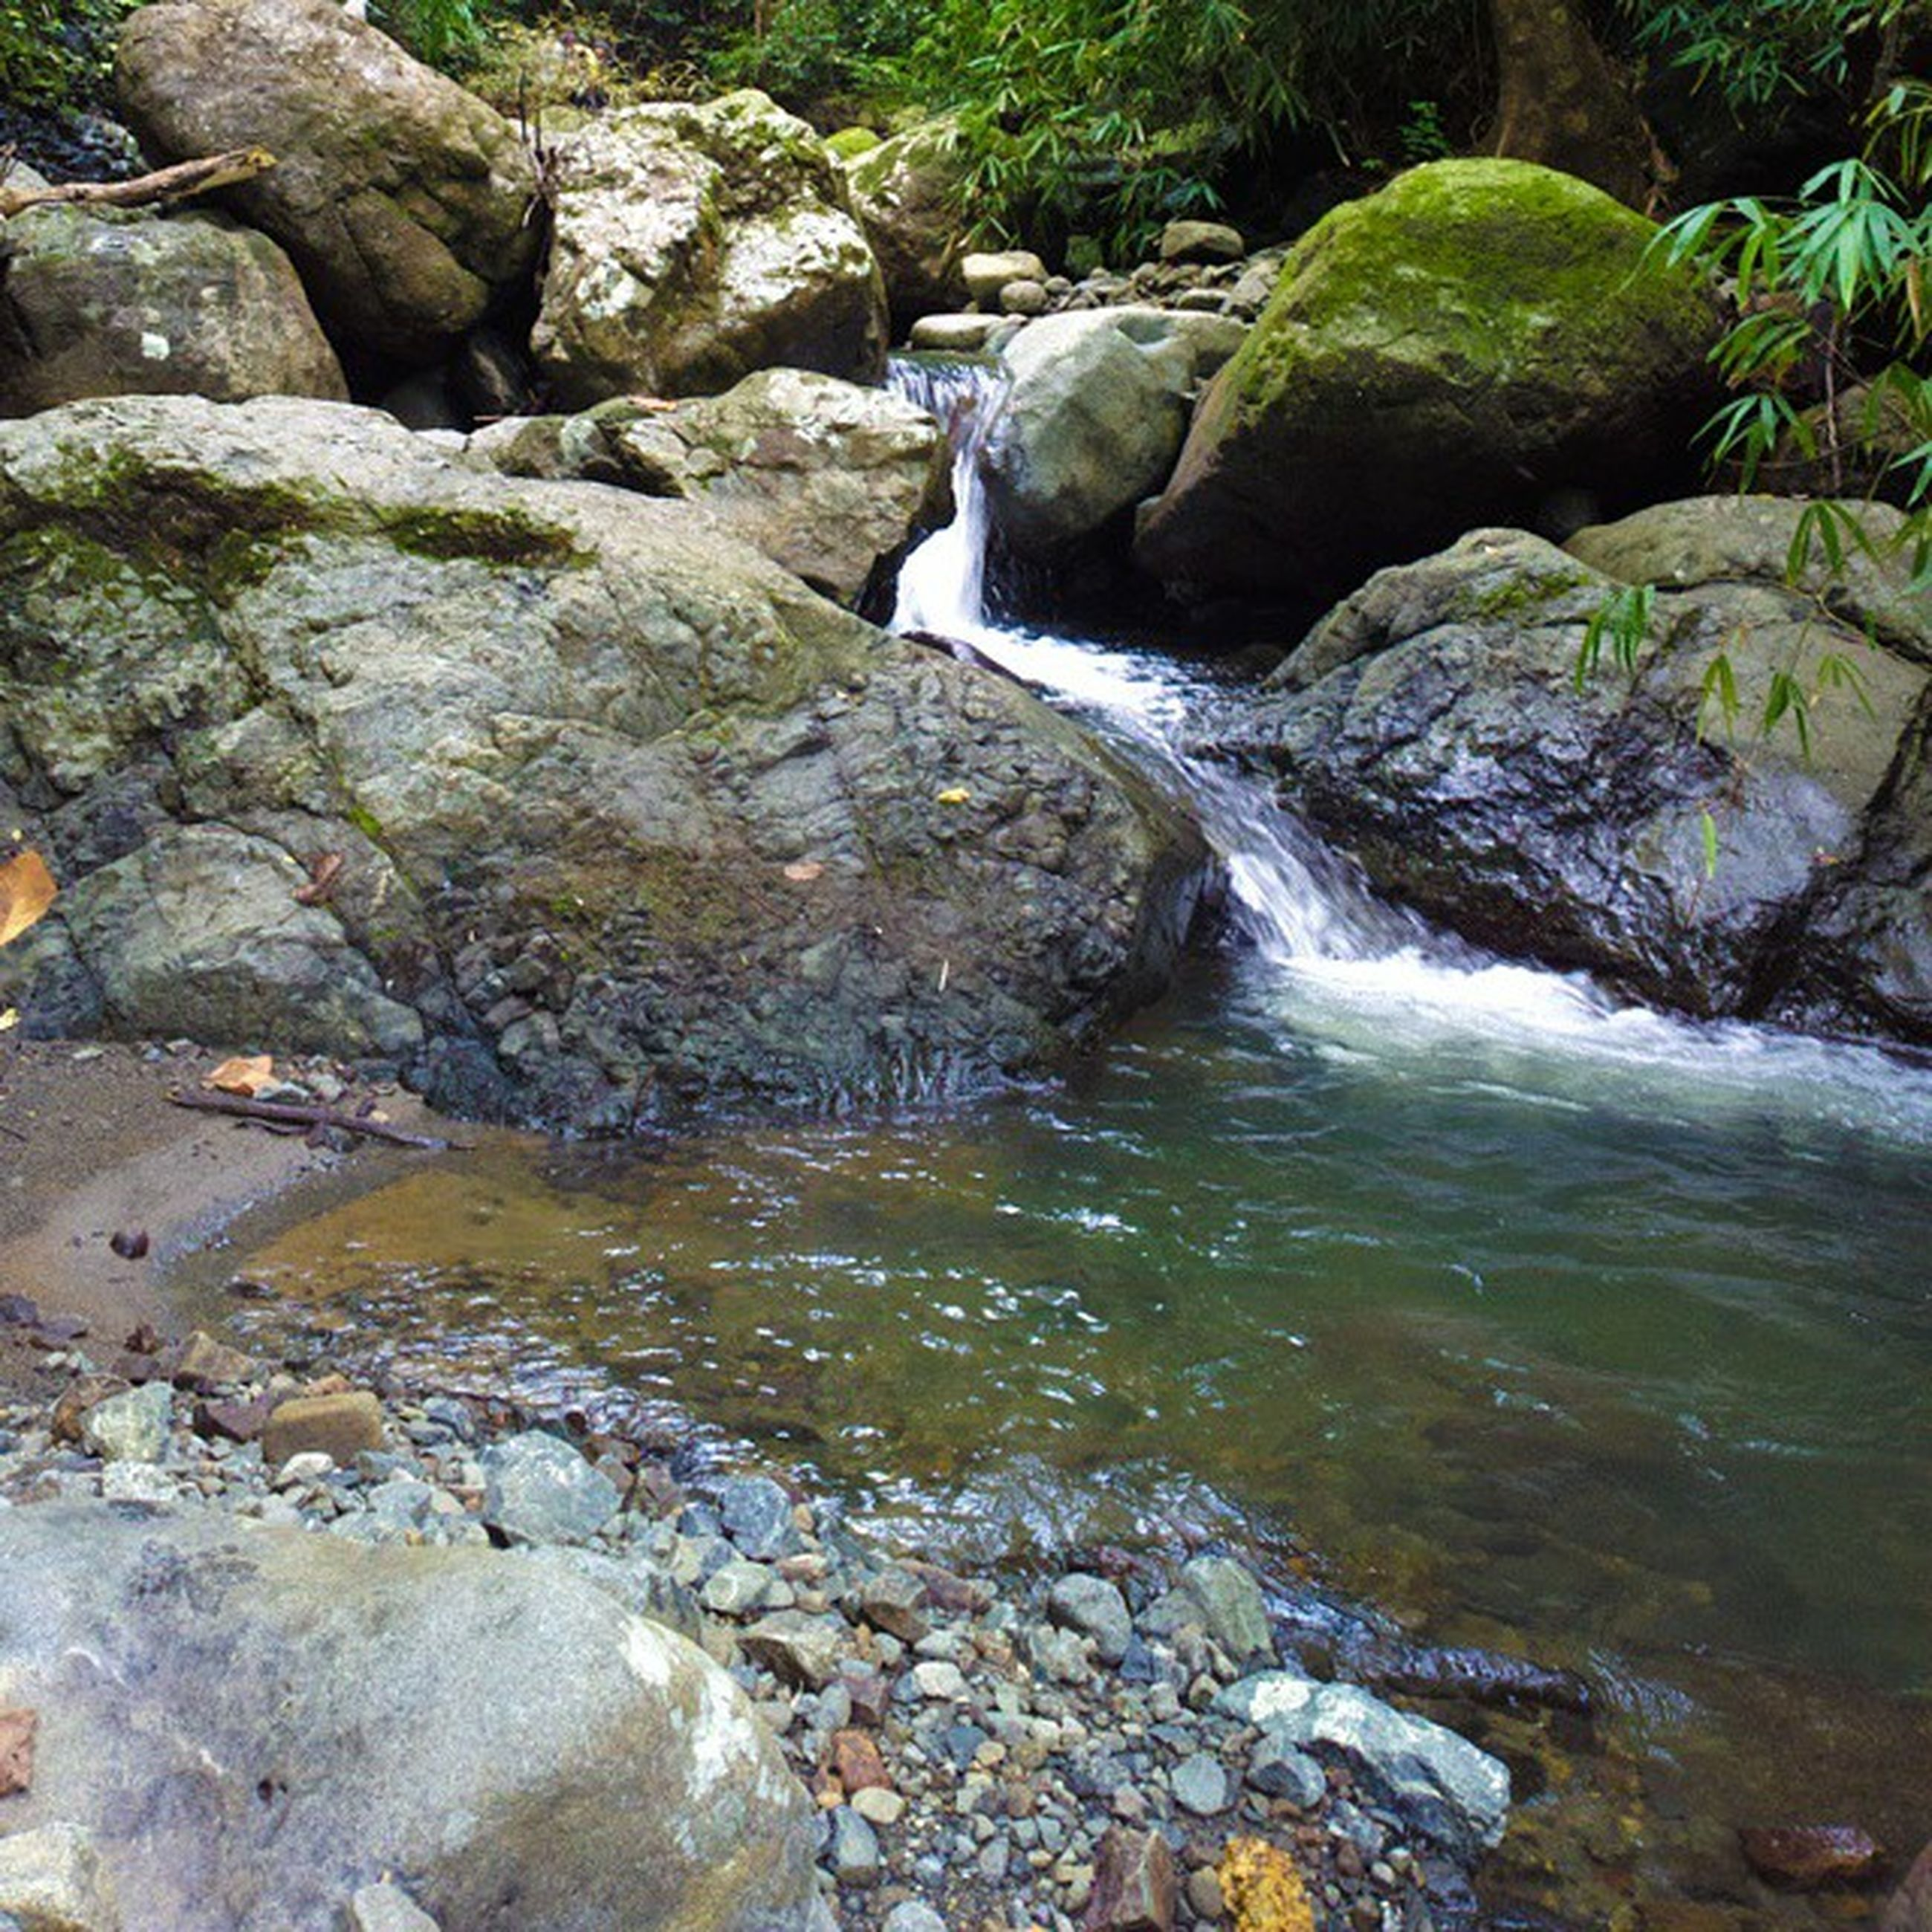 rock - object, water, rock formation, rock, nature, beauty in nature, flowing water, stream, motion, stone - object, flowing, scenics, waterfall, stone, tranquility, river, moss, tranquil scene, day, outdoors